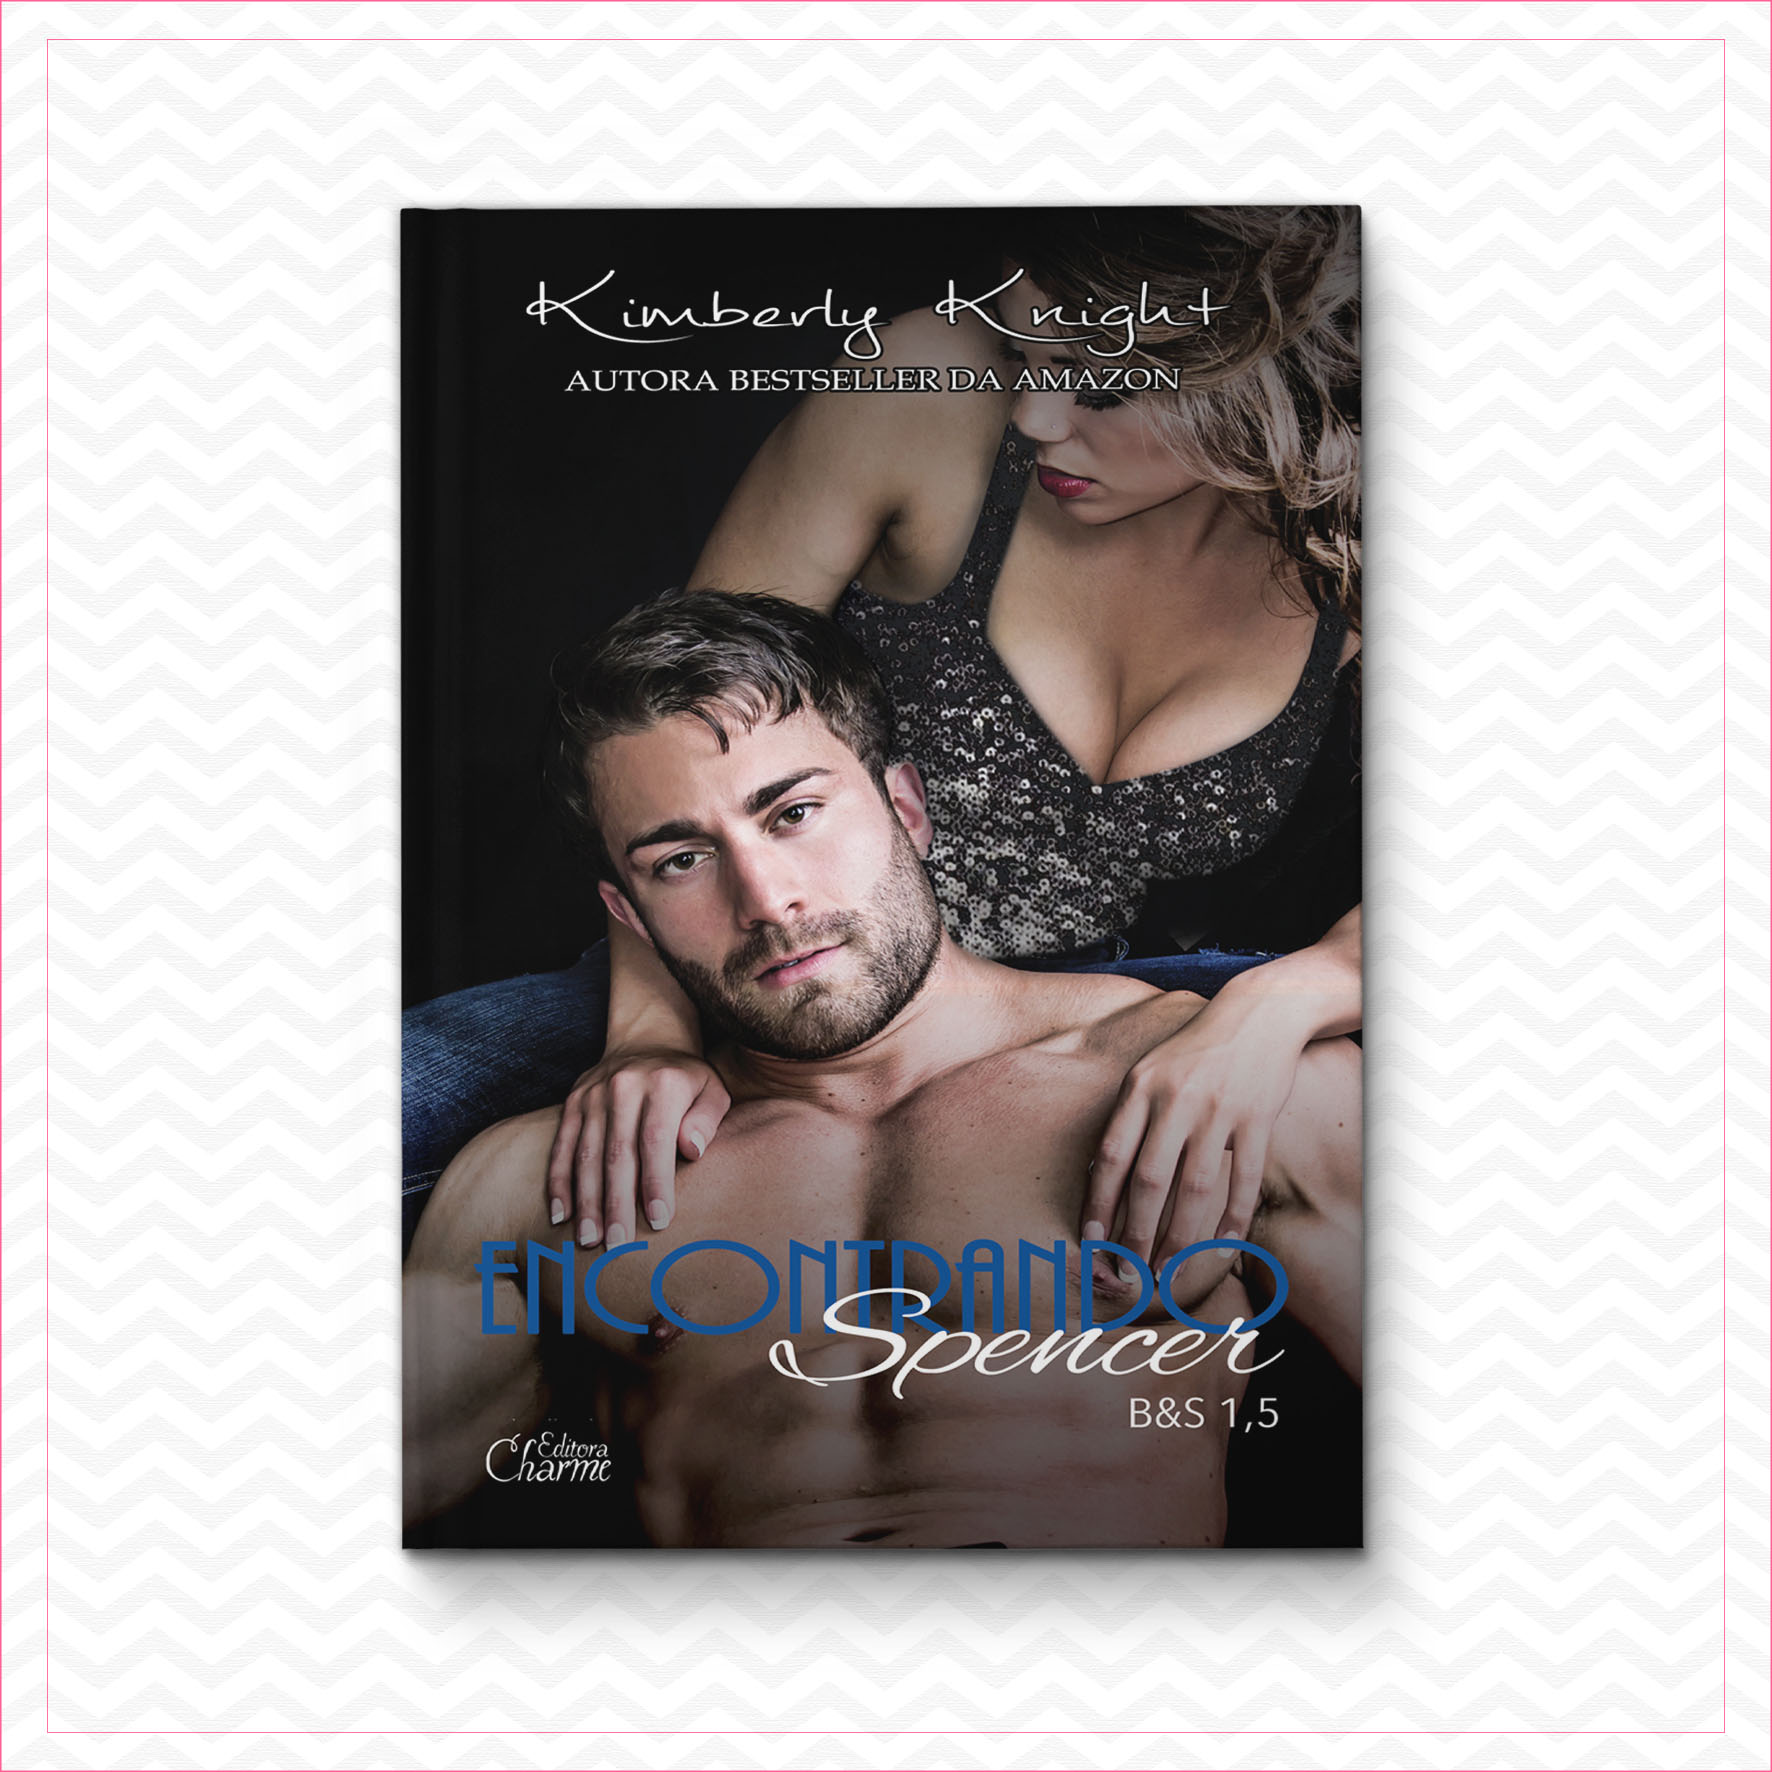 Encontrando Spencer – Série B&S 1,5 – Kimberly Knight